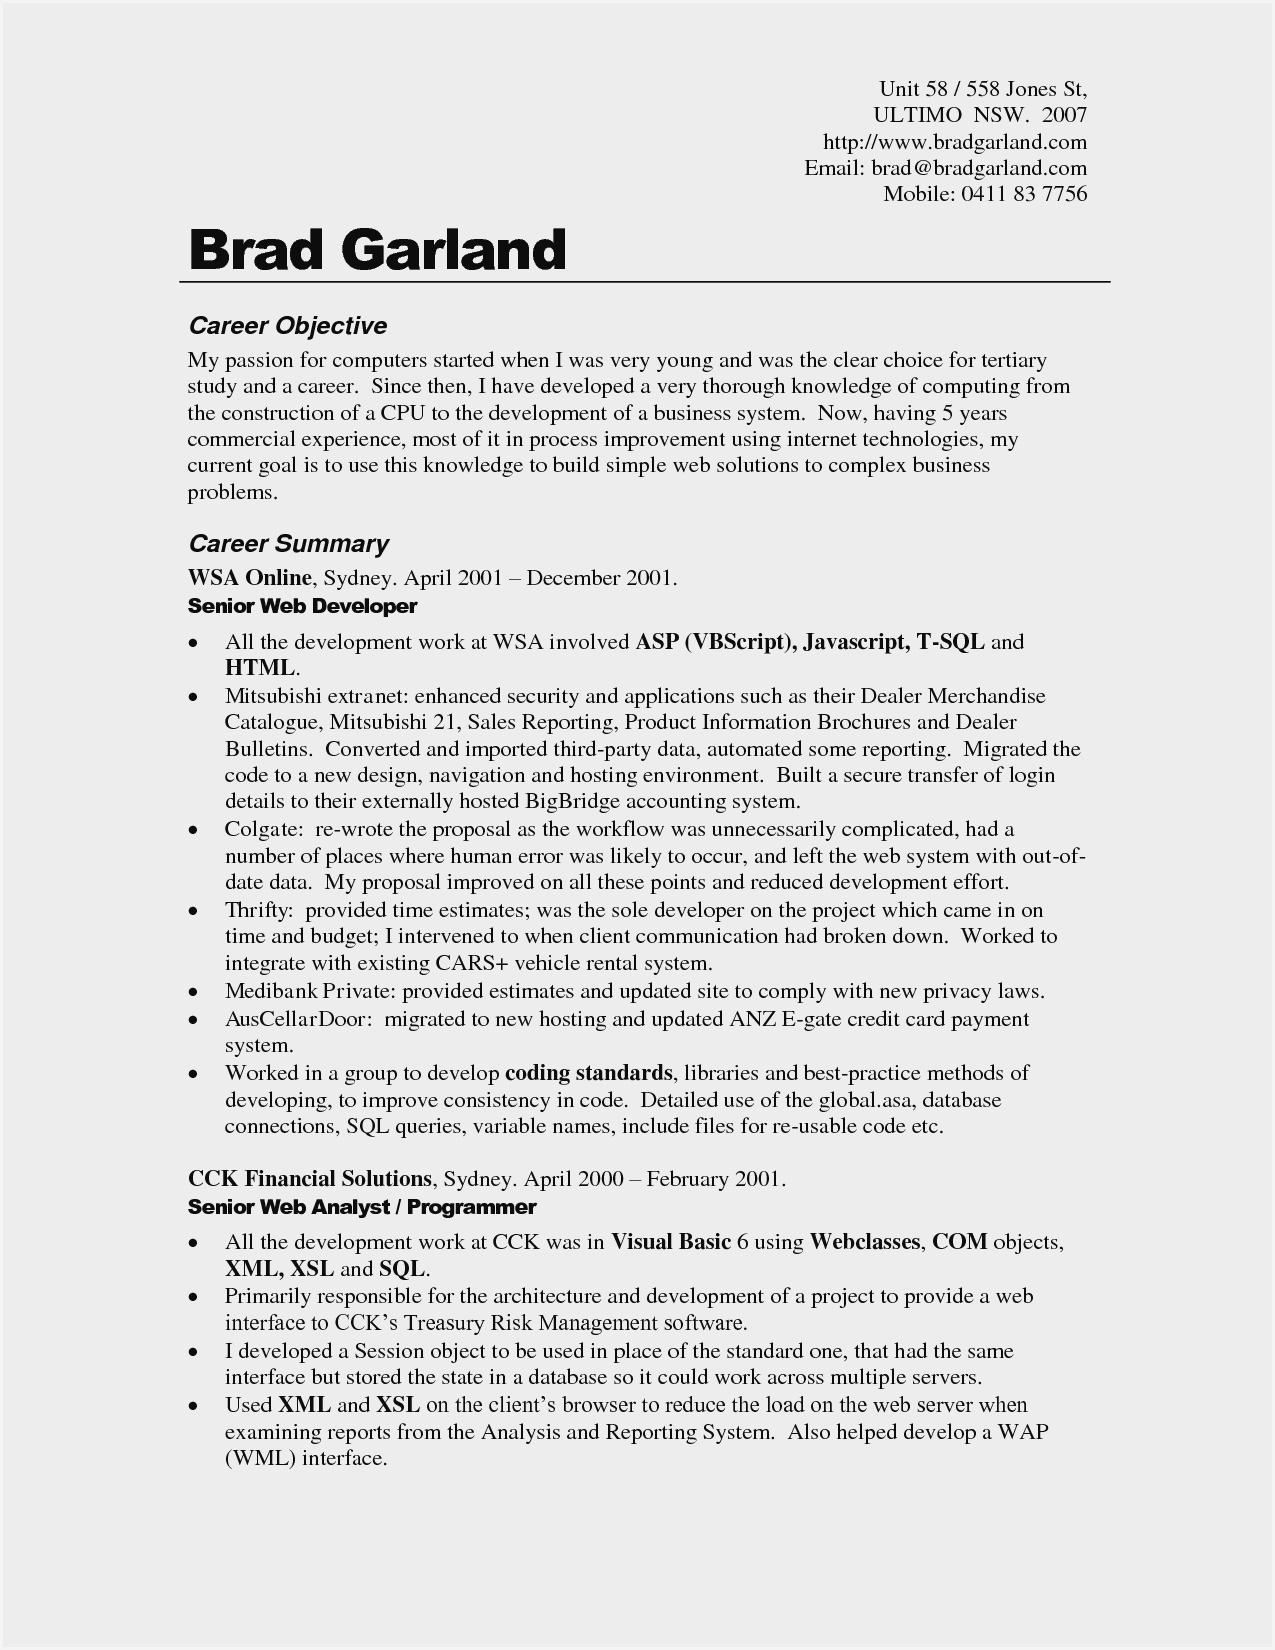 examples of great resume objective statements sample for resumes information technology Resume Great Objective Statements For Resumes